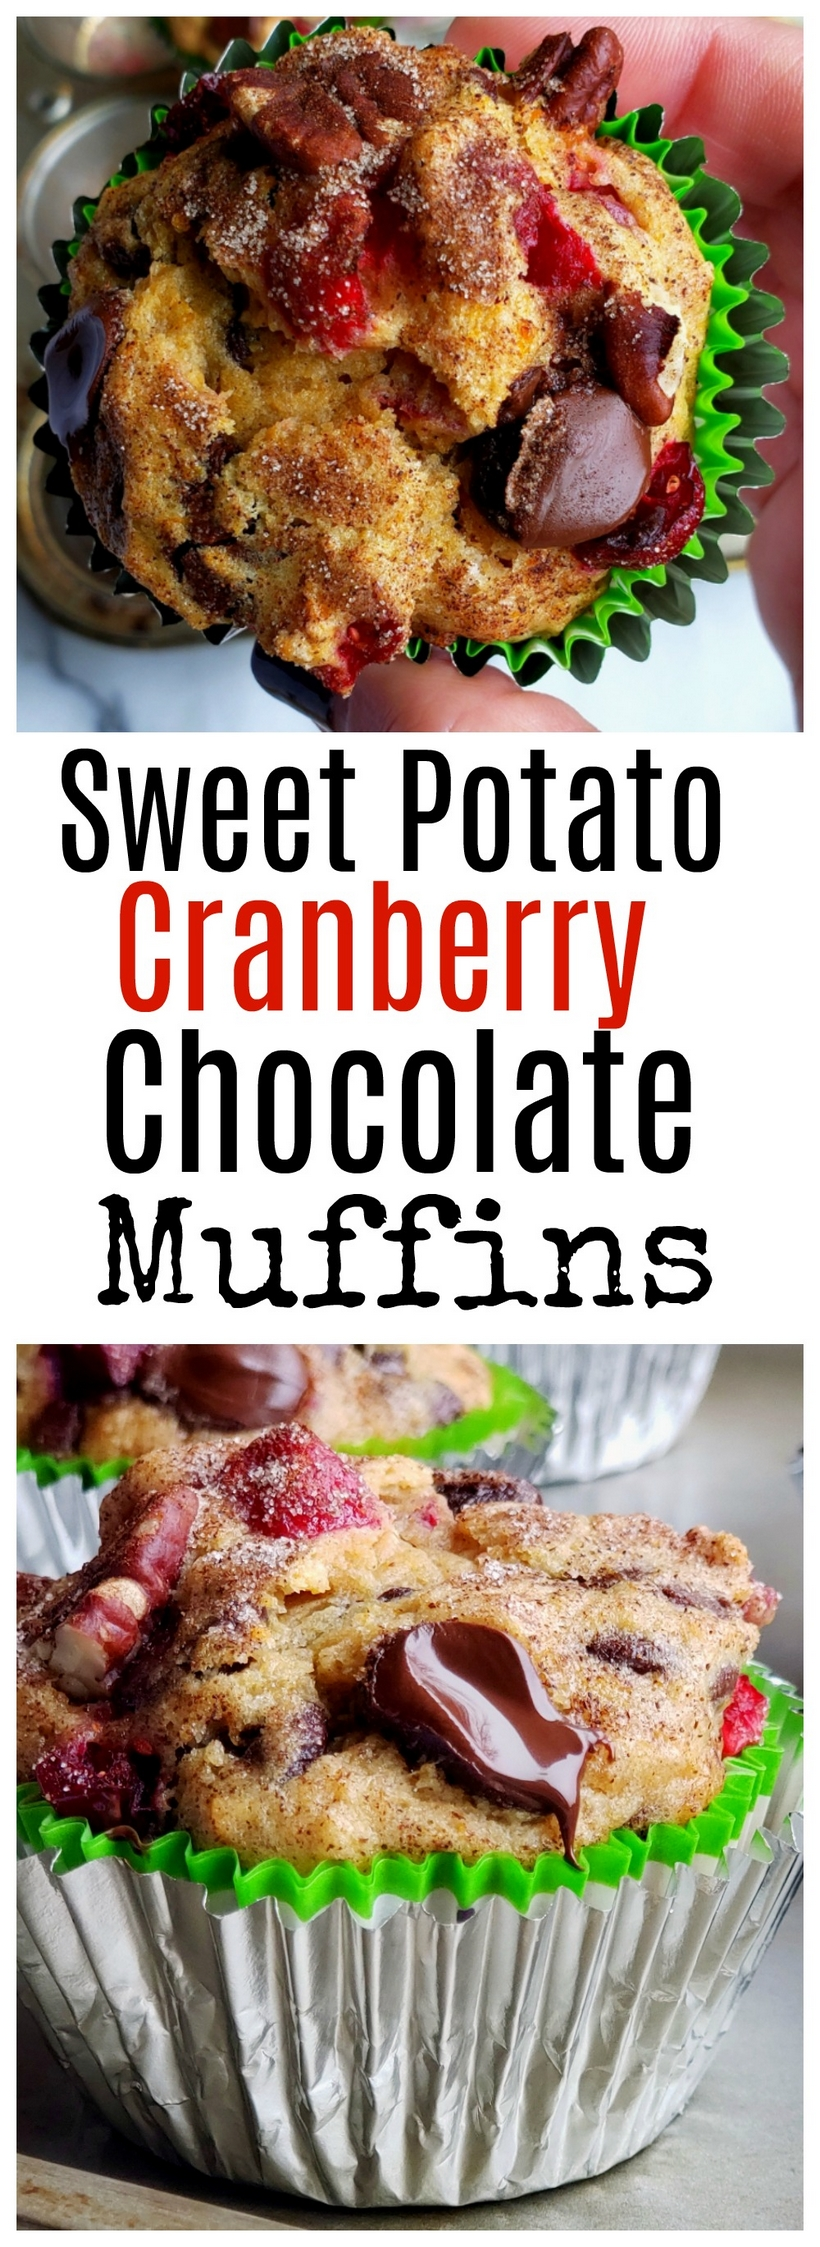 The ingredients are simple on their own, but together these Sweet Potato Cranberry-Chocolate Muffins are a delicious fall symphony. Each flavor compliments and enhances one another making these muffins one of the best tasting bites you'll enjoy this season. #sweetpotatoes #sweetpotatoesrecipes #sweetpotatomuffin #sweetpotatomuffins #sweetpotatomuffinsrecipe #freshcranberries #thanksgivingdessertforacrowd #thanksgivingdessert #easythanksgivingdessert #thanksgivingrecipe  via @cmpollak1